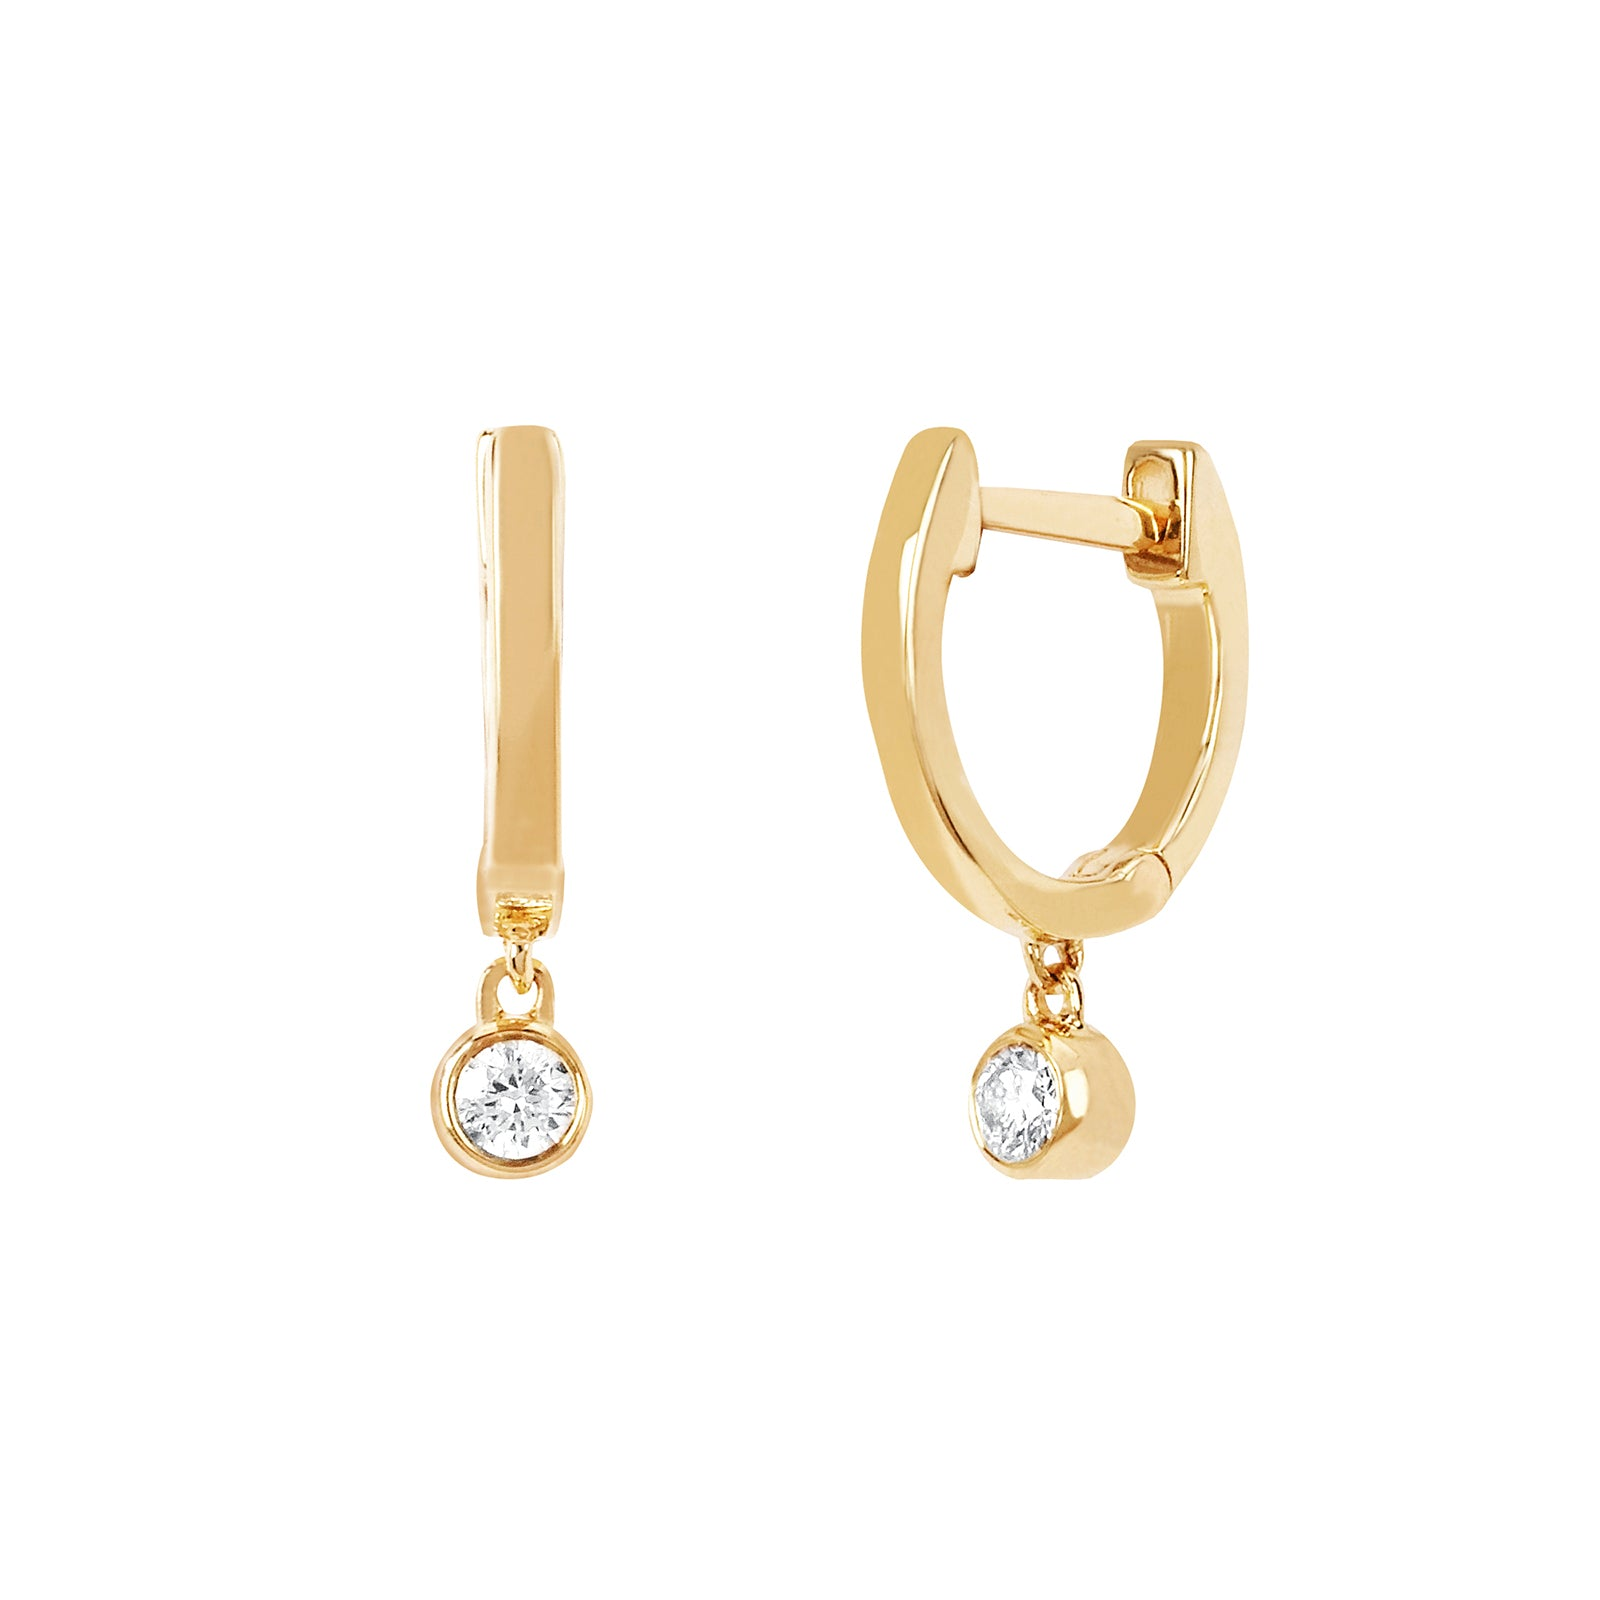 EF Collection Mini Huggie Diamond Bezel Earrings - Yellow Gold - Earrings - Broken English Jewelry